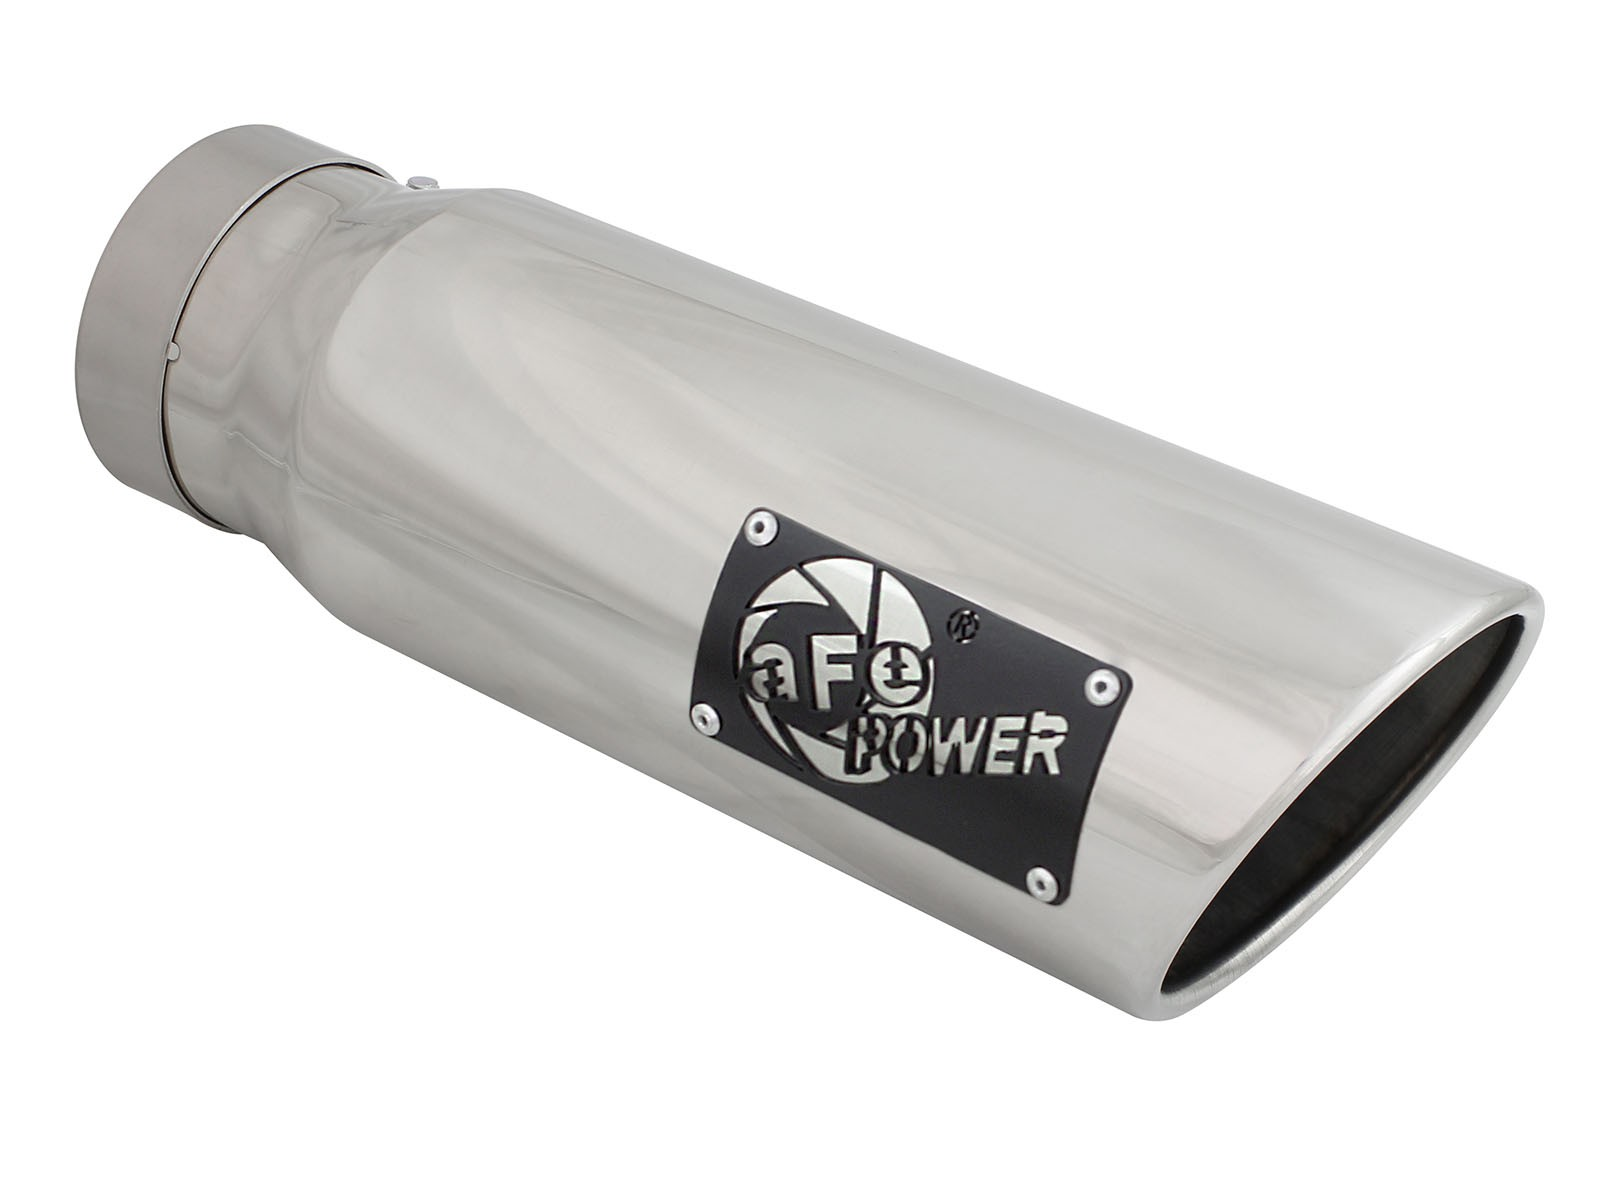 "aFe POWER 49T40501-P15 MACH Force-Xp 4"" 304 Stainless Steel Exhaust Tip"